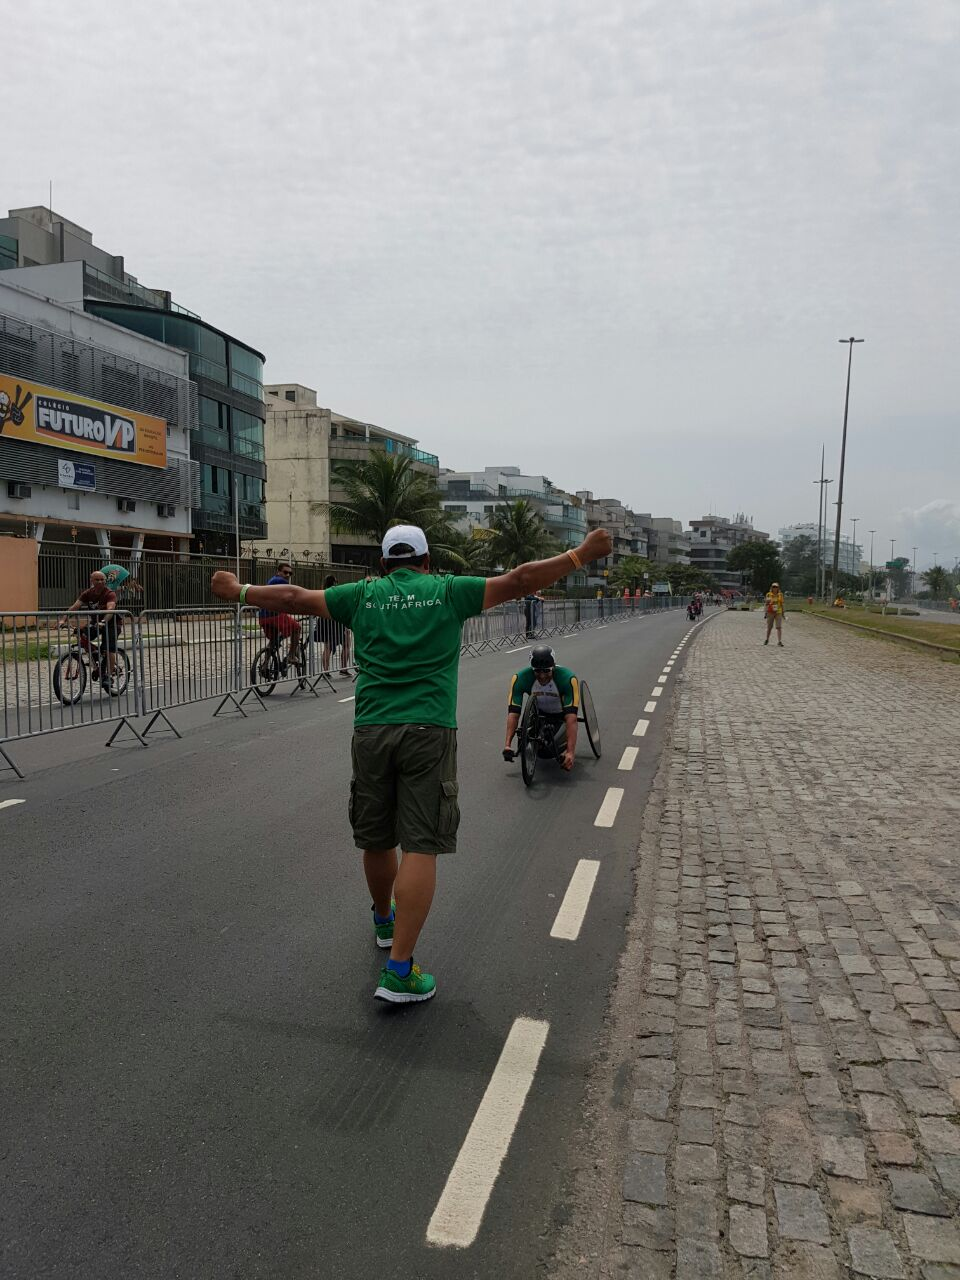 A moment of celebration as Ernst van Dyk claims the Gold medal win in the Men's H5 Road Race at the 2016 Rio Paralympics on Thursday 15 September